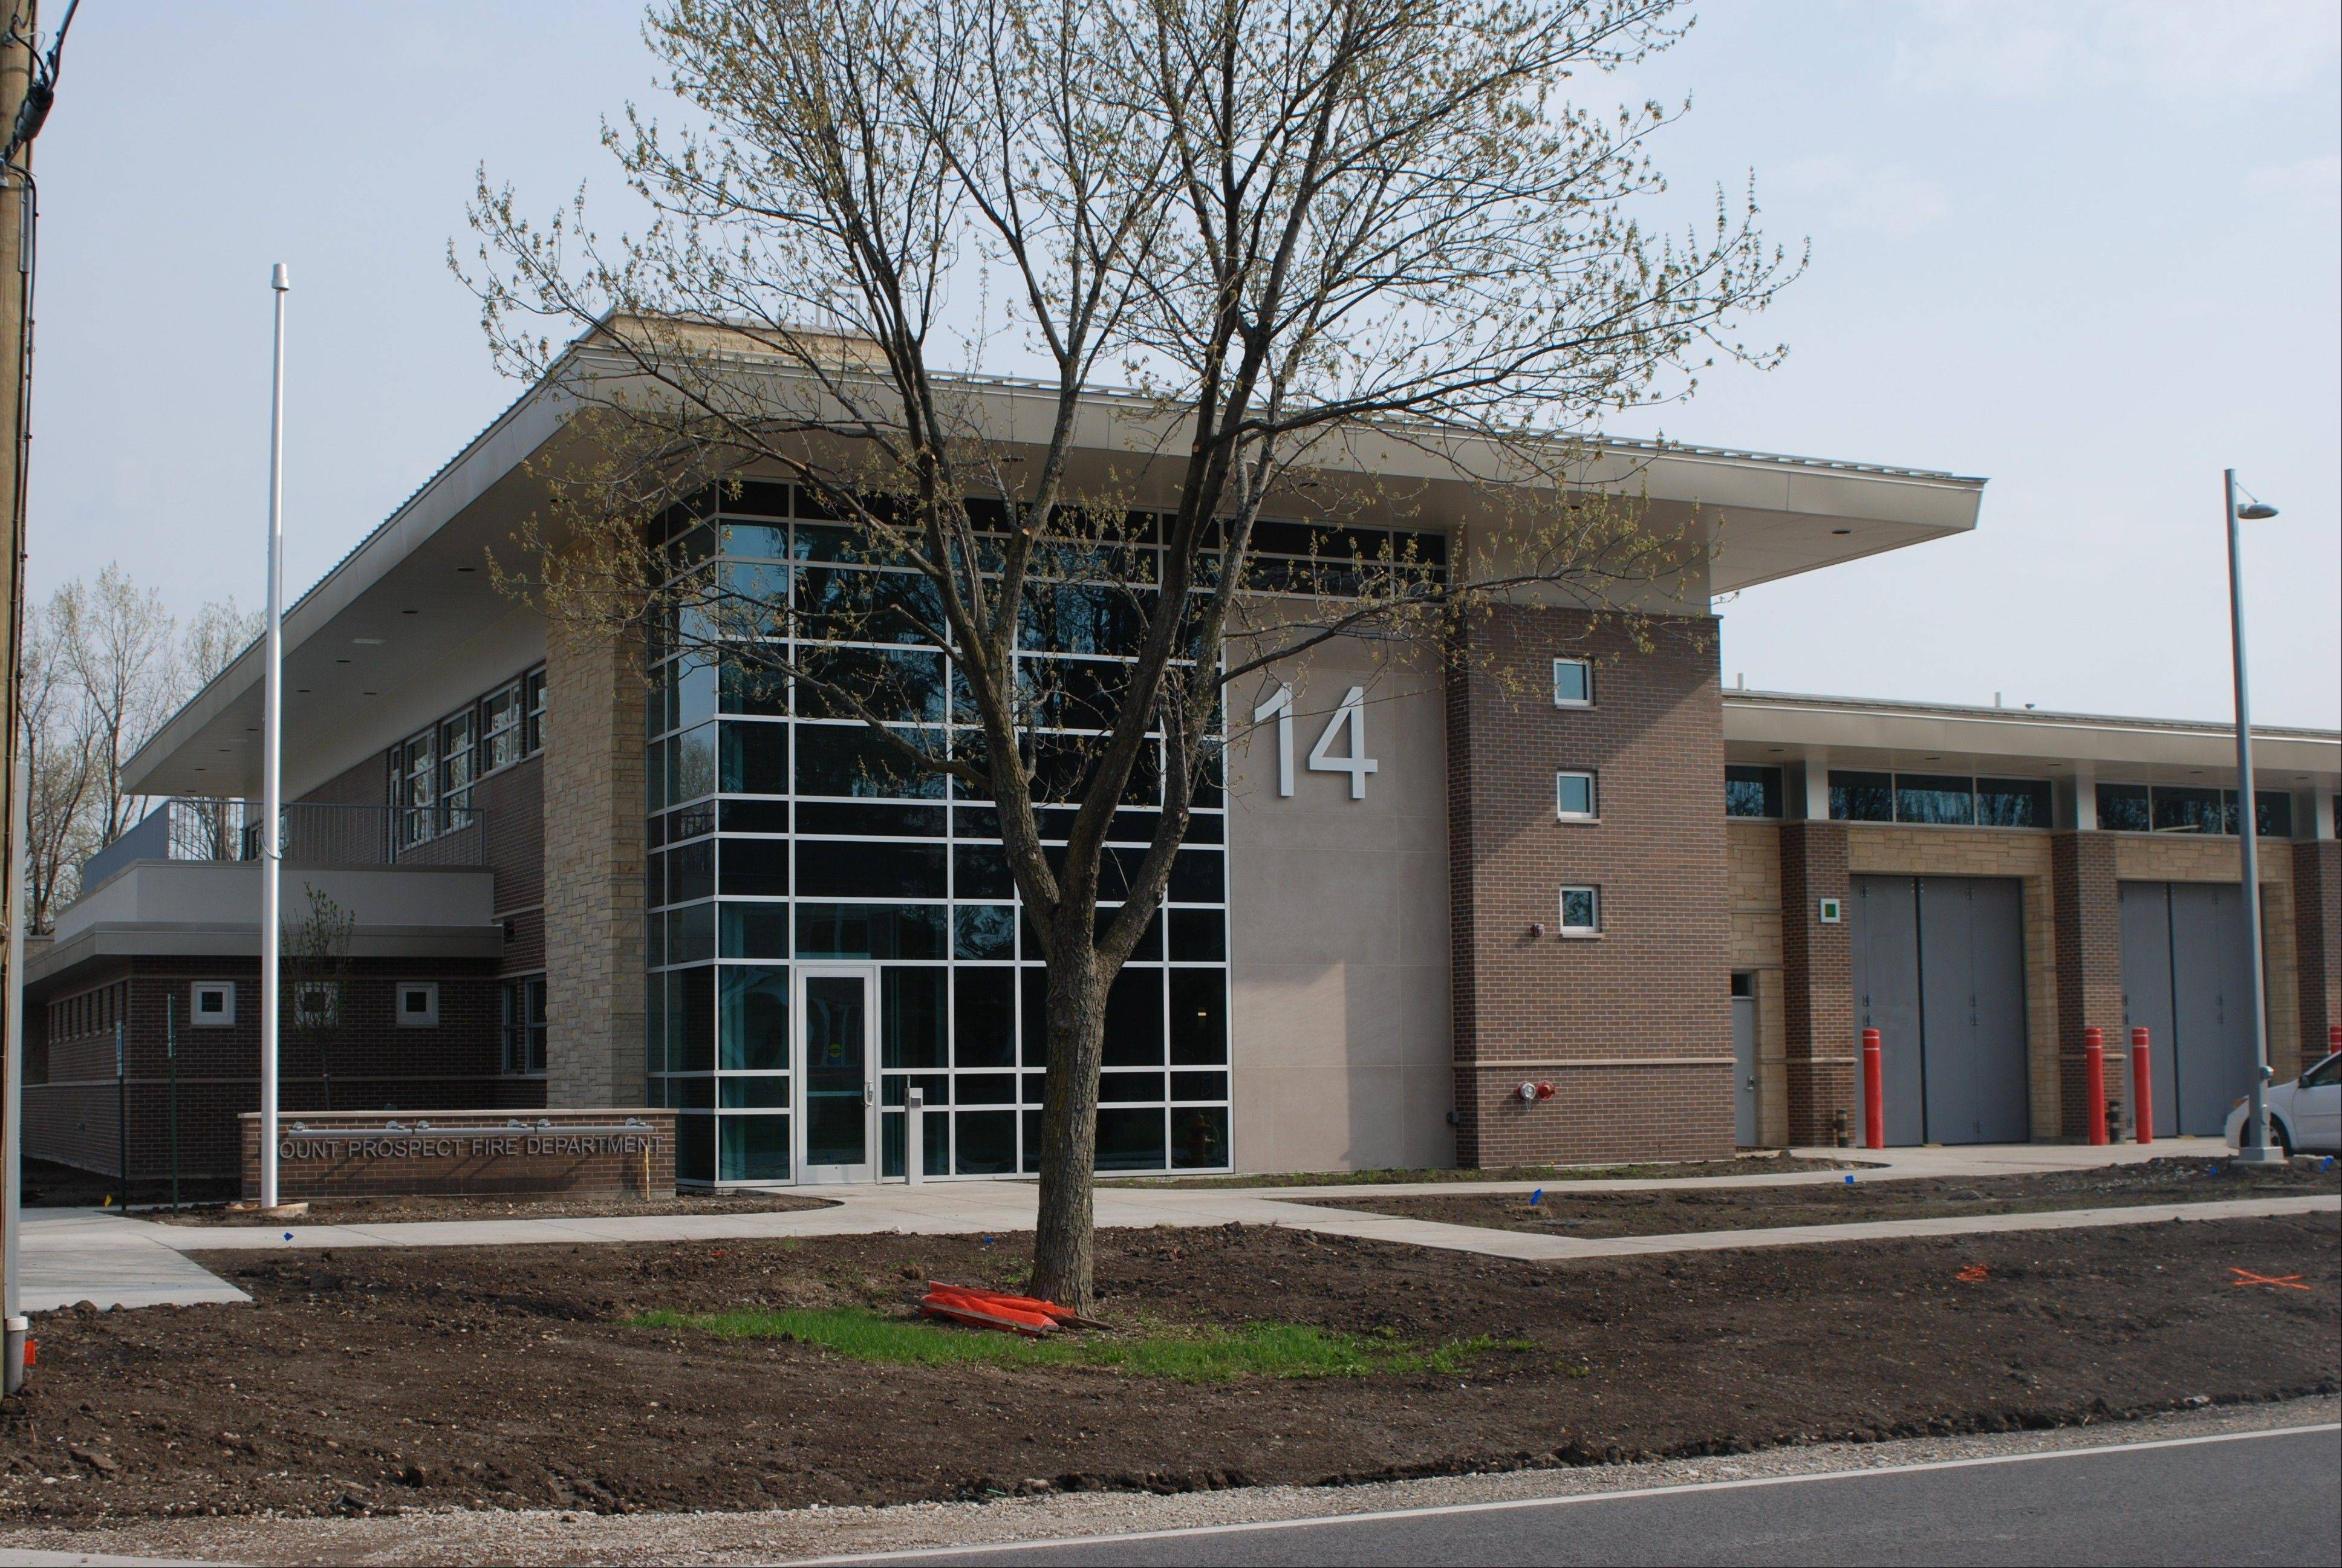 This is the Mount Prospect�s newest fire station, which opened in 2010 at 2000 E. Kensington Road, replacing a building nearby that was inadequate for the department�s needs.